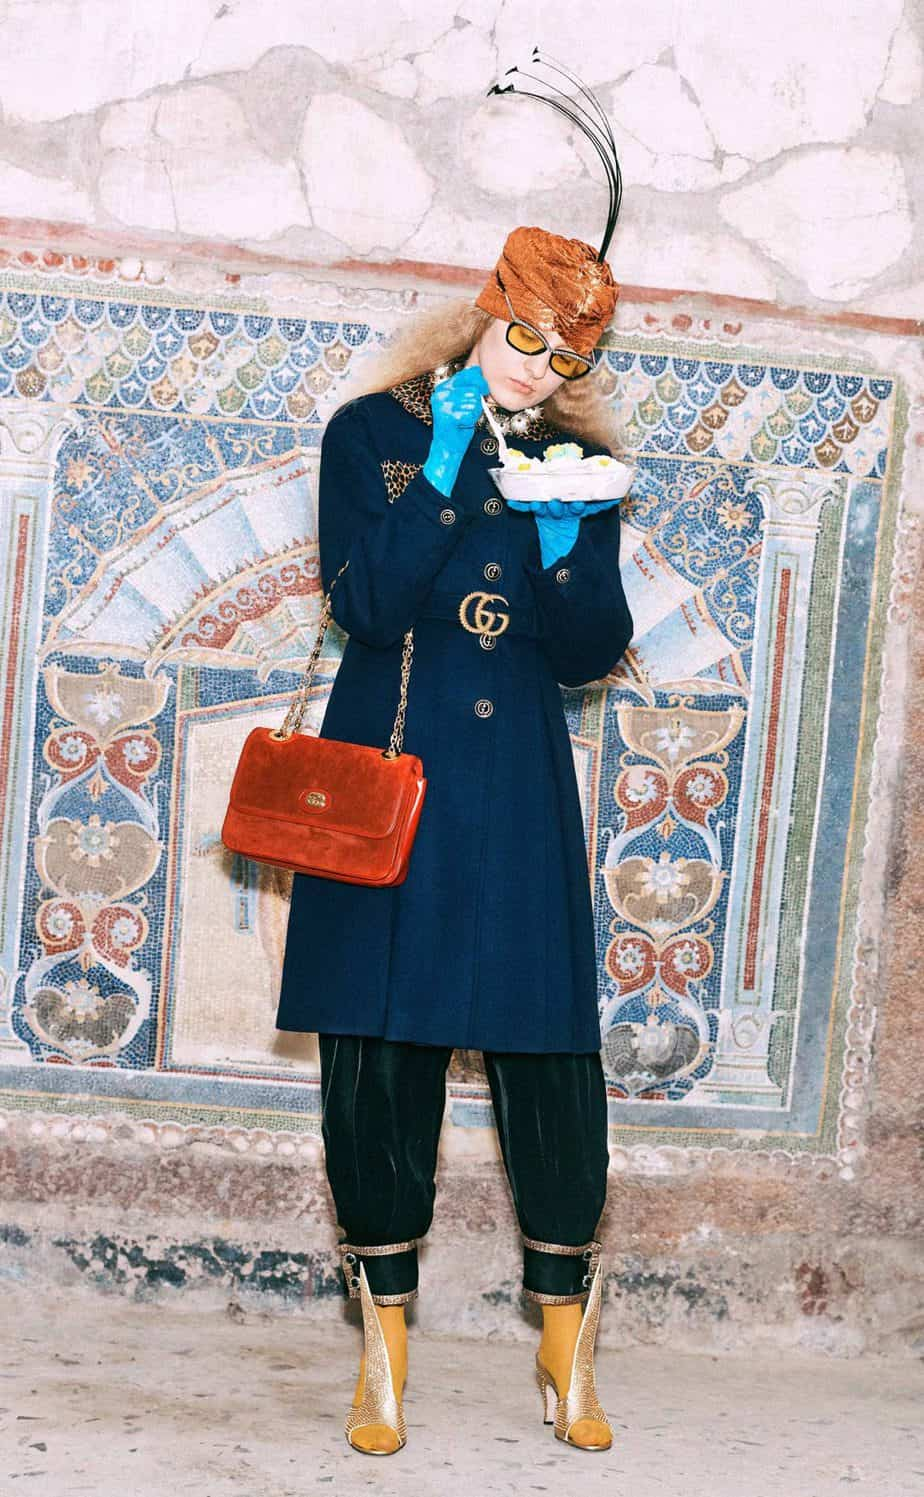 GUCCI, FALL 2019. WOMEN'S FASHION, Photographer Harmony Korine, Art Director, Christopher Simmonds - 99